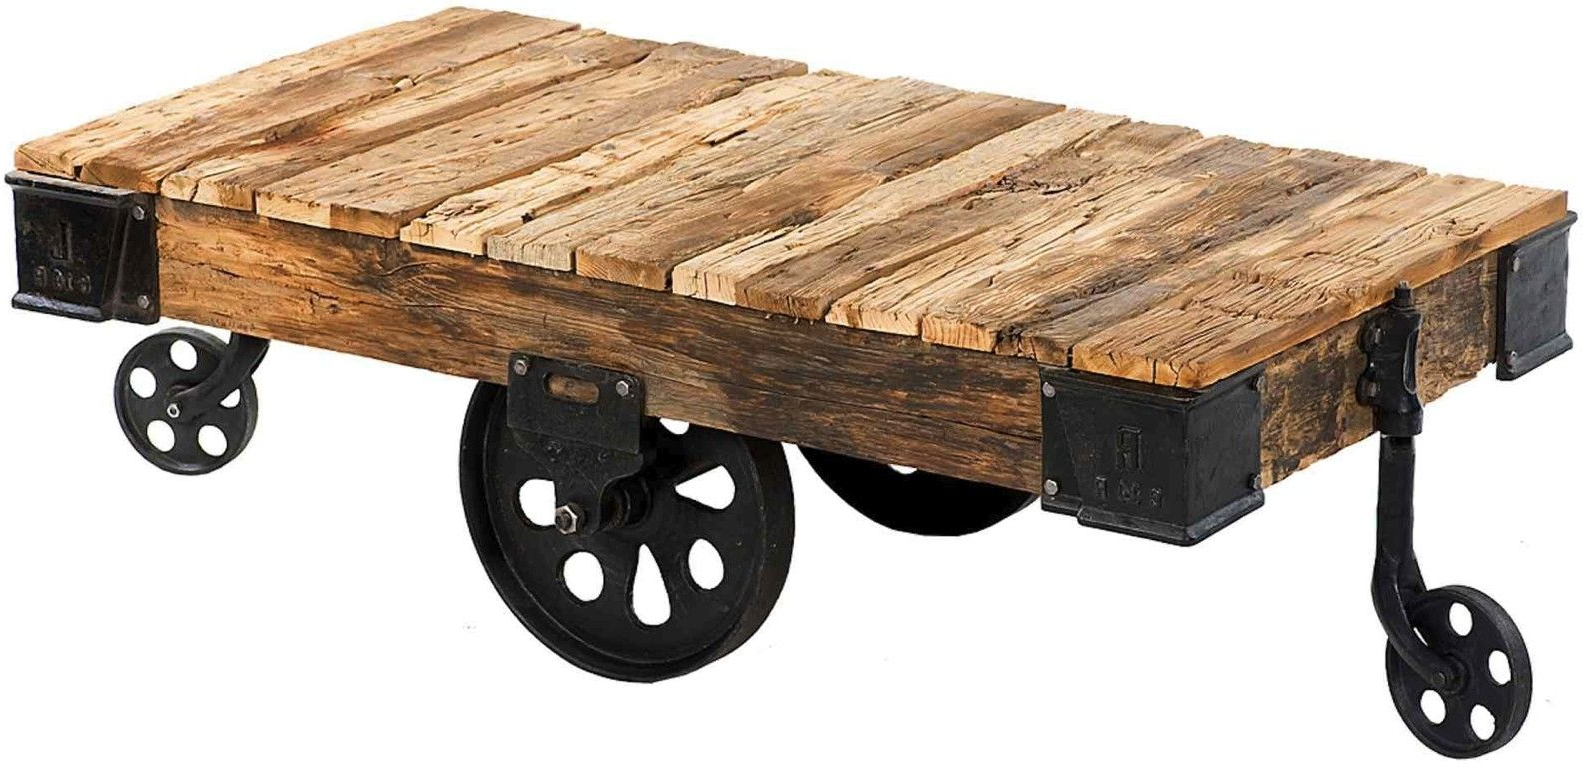 Custom Reproduction Industrial Factory Cart Coffee Tablemortise Throughout Most Recent Natural Wheel Coffee Tables (Gallery 6 of 20)